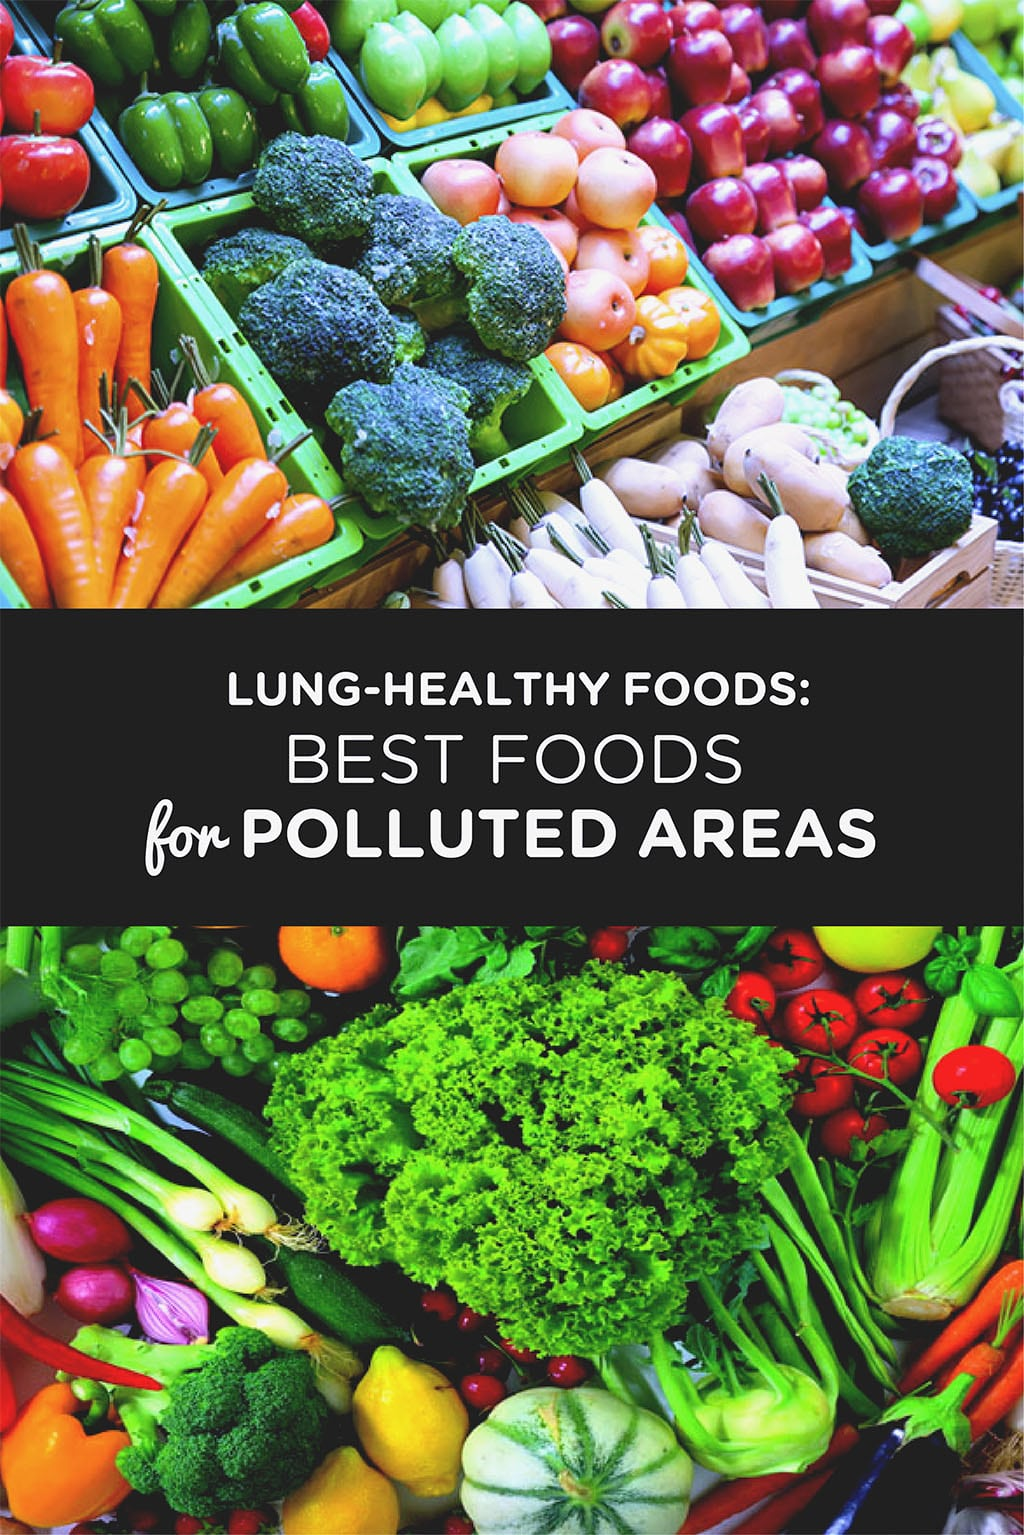 Lung-Healthy Foods- Best Foods for Polluted Areas